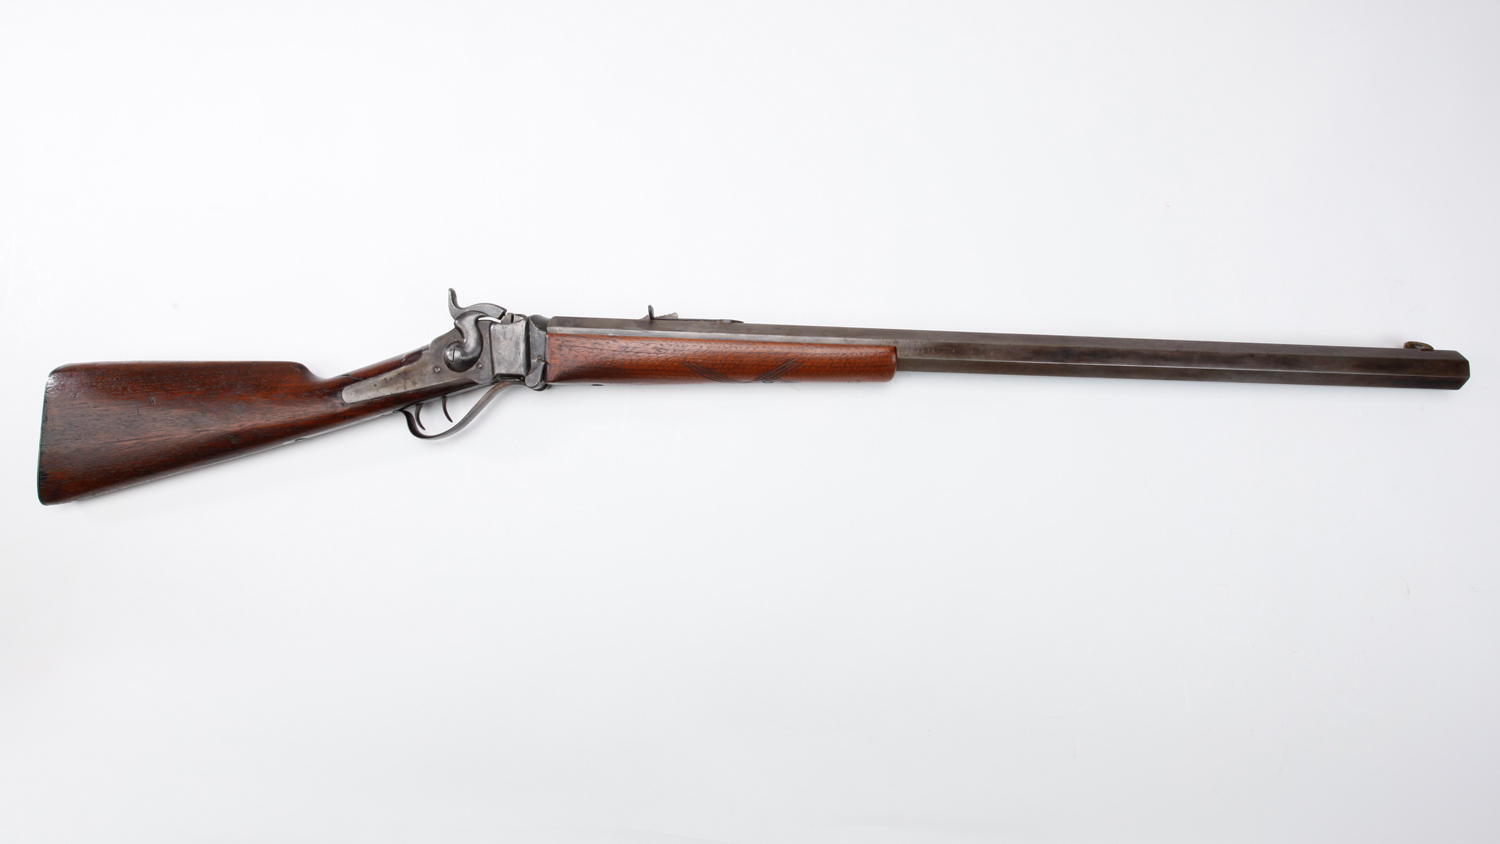 Buffalo Gun Shoots Far: A Sharps .45-100 Rifle